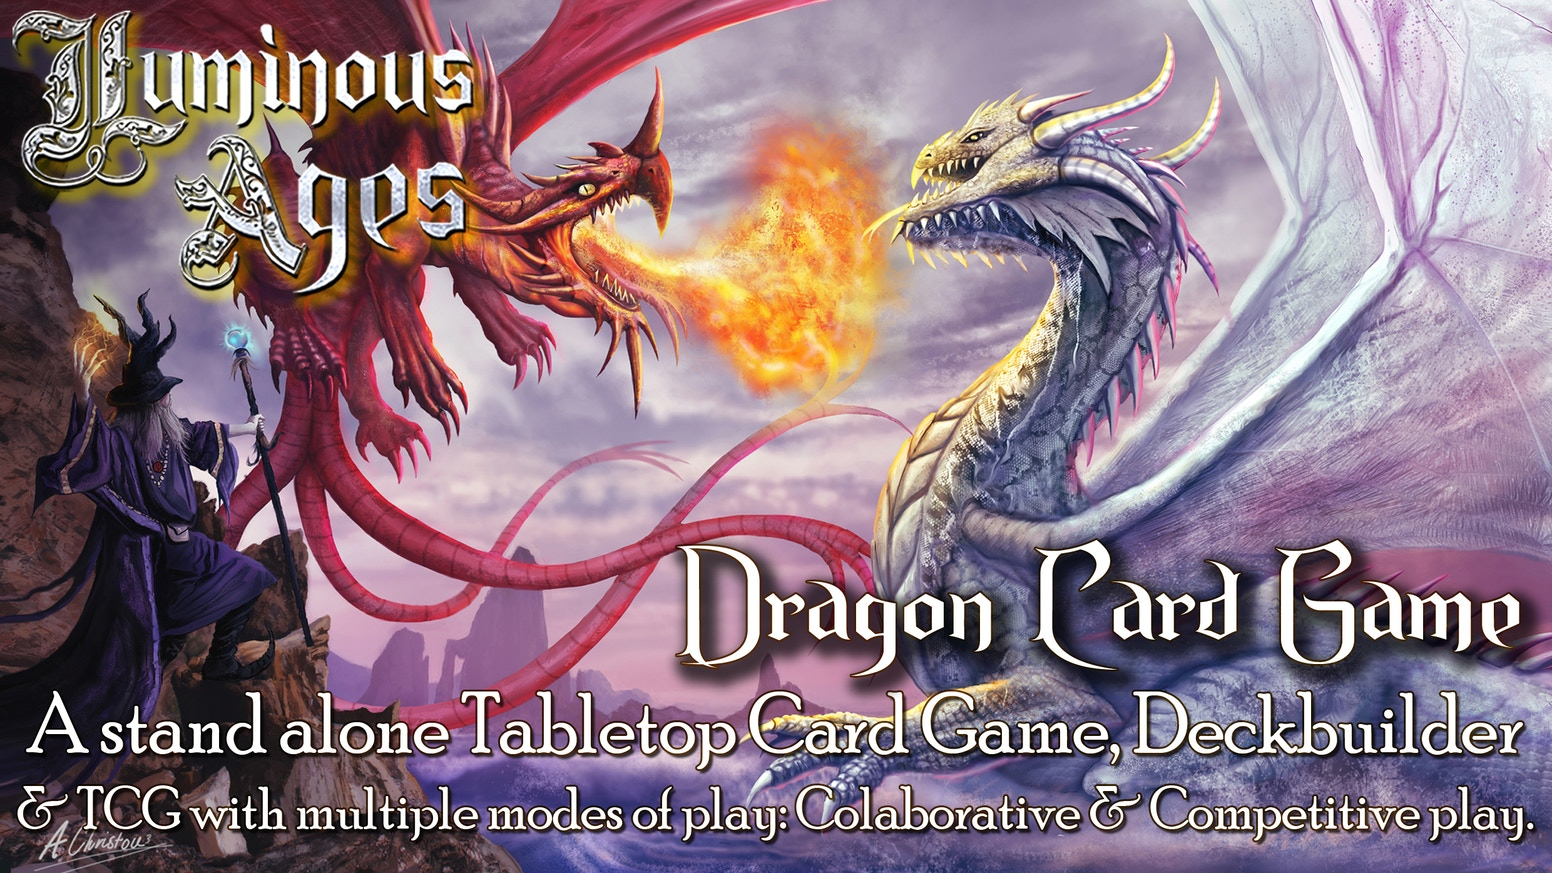 Luminous Ages, a tabletop & trading card game with cooperative and competitive play. Fight against Dragon Gods in this Dream Universe.